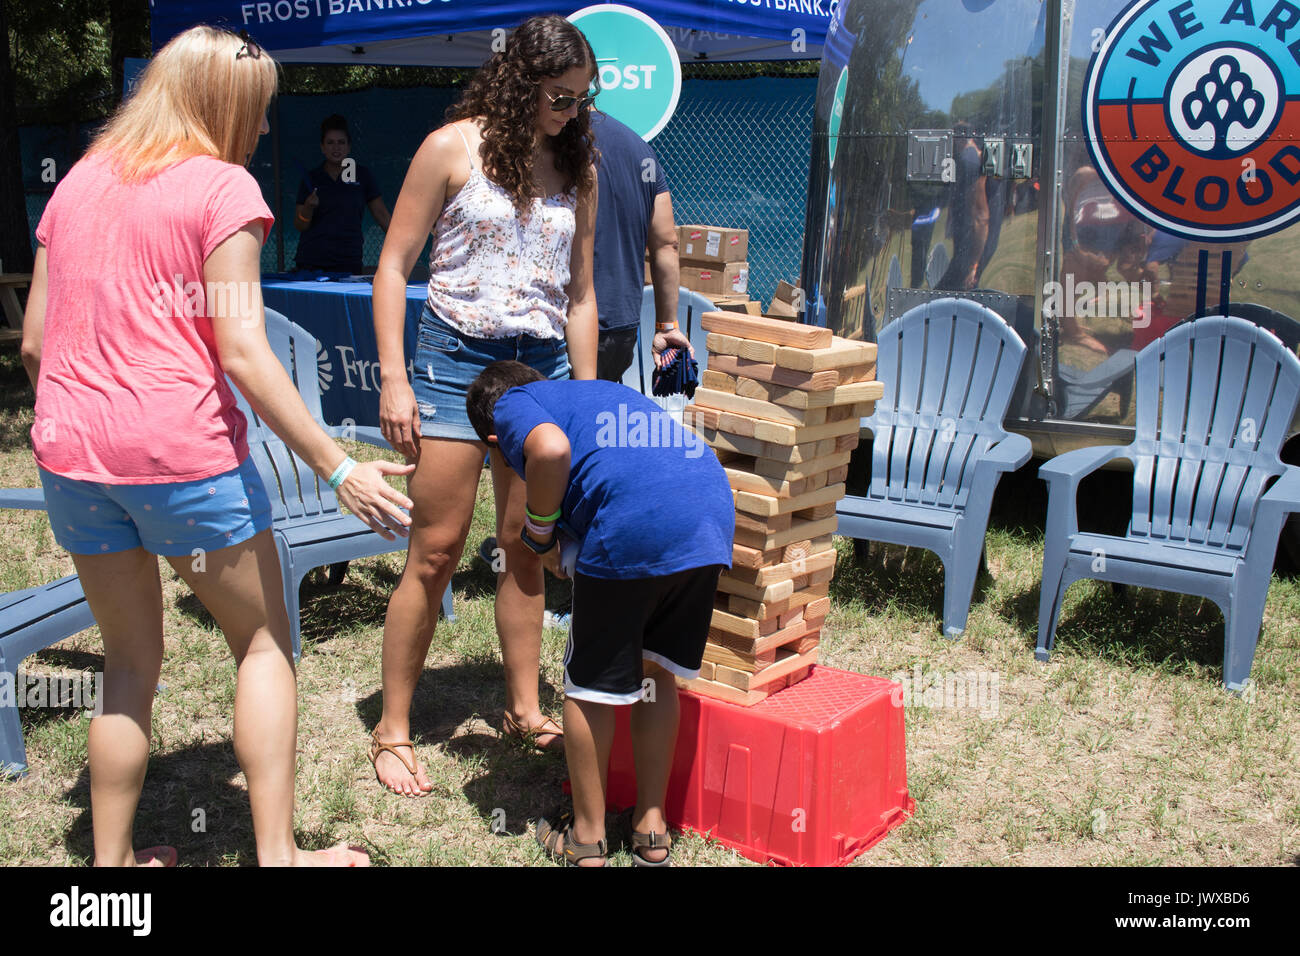 Three people playing giant Jenga game outdoors with chrome Airstream bloodmobile in background at Austin Ice Cream Festival. - Stock Image